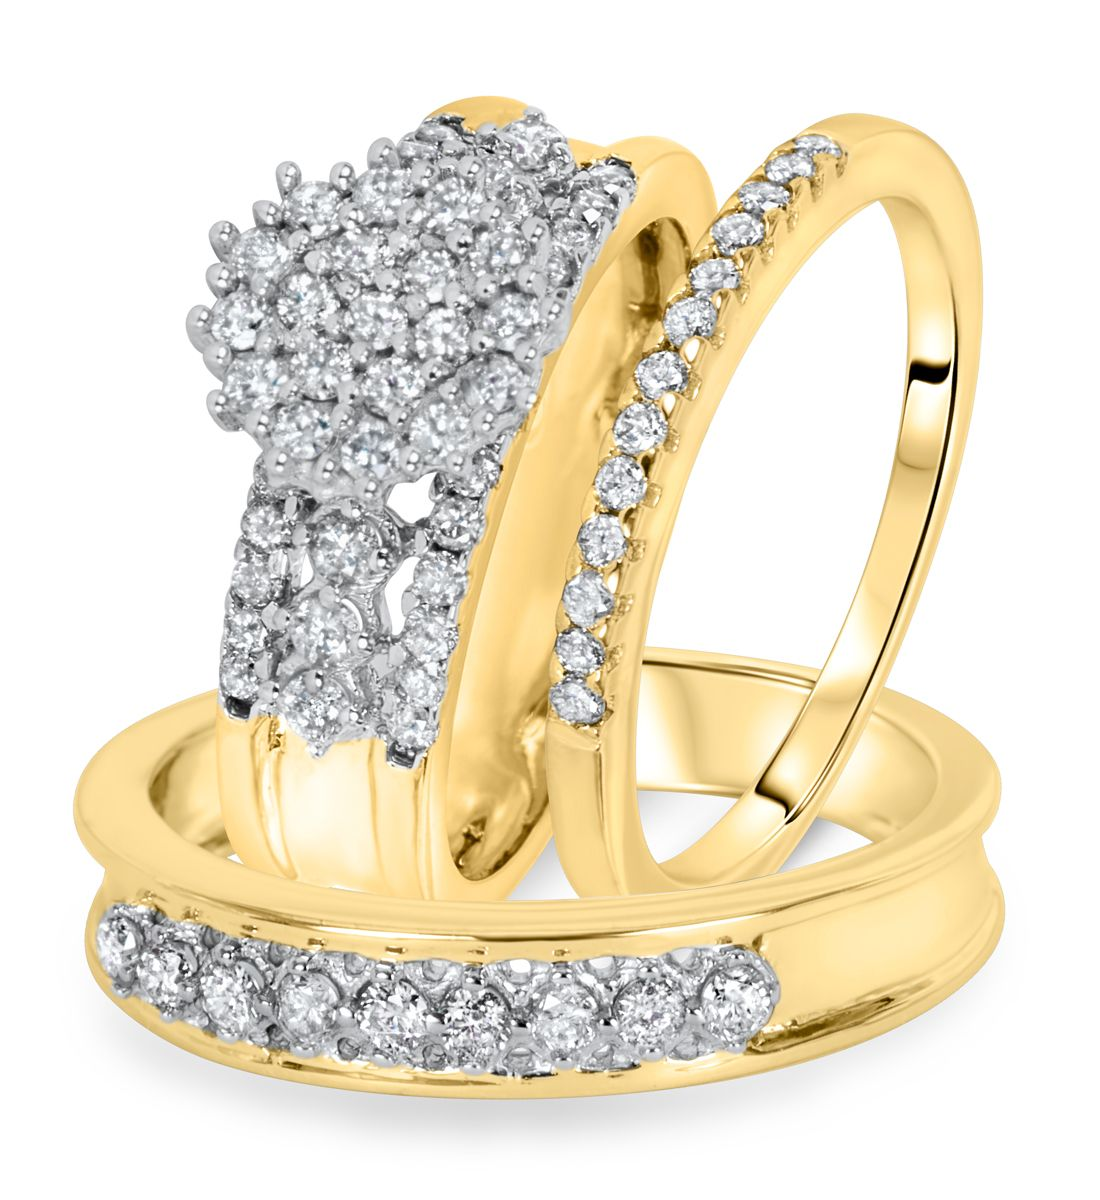 1 Carat Diamond Trio Wedding Ring Set 14k Yellow Gold Wedding Ring Trio Sets Wedding Ring Sets Wedding Rings Sets His And Hers